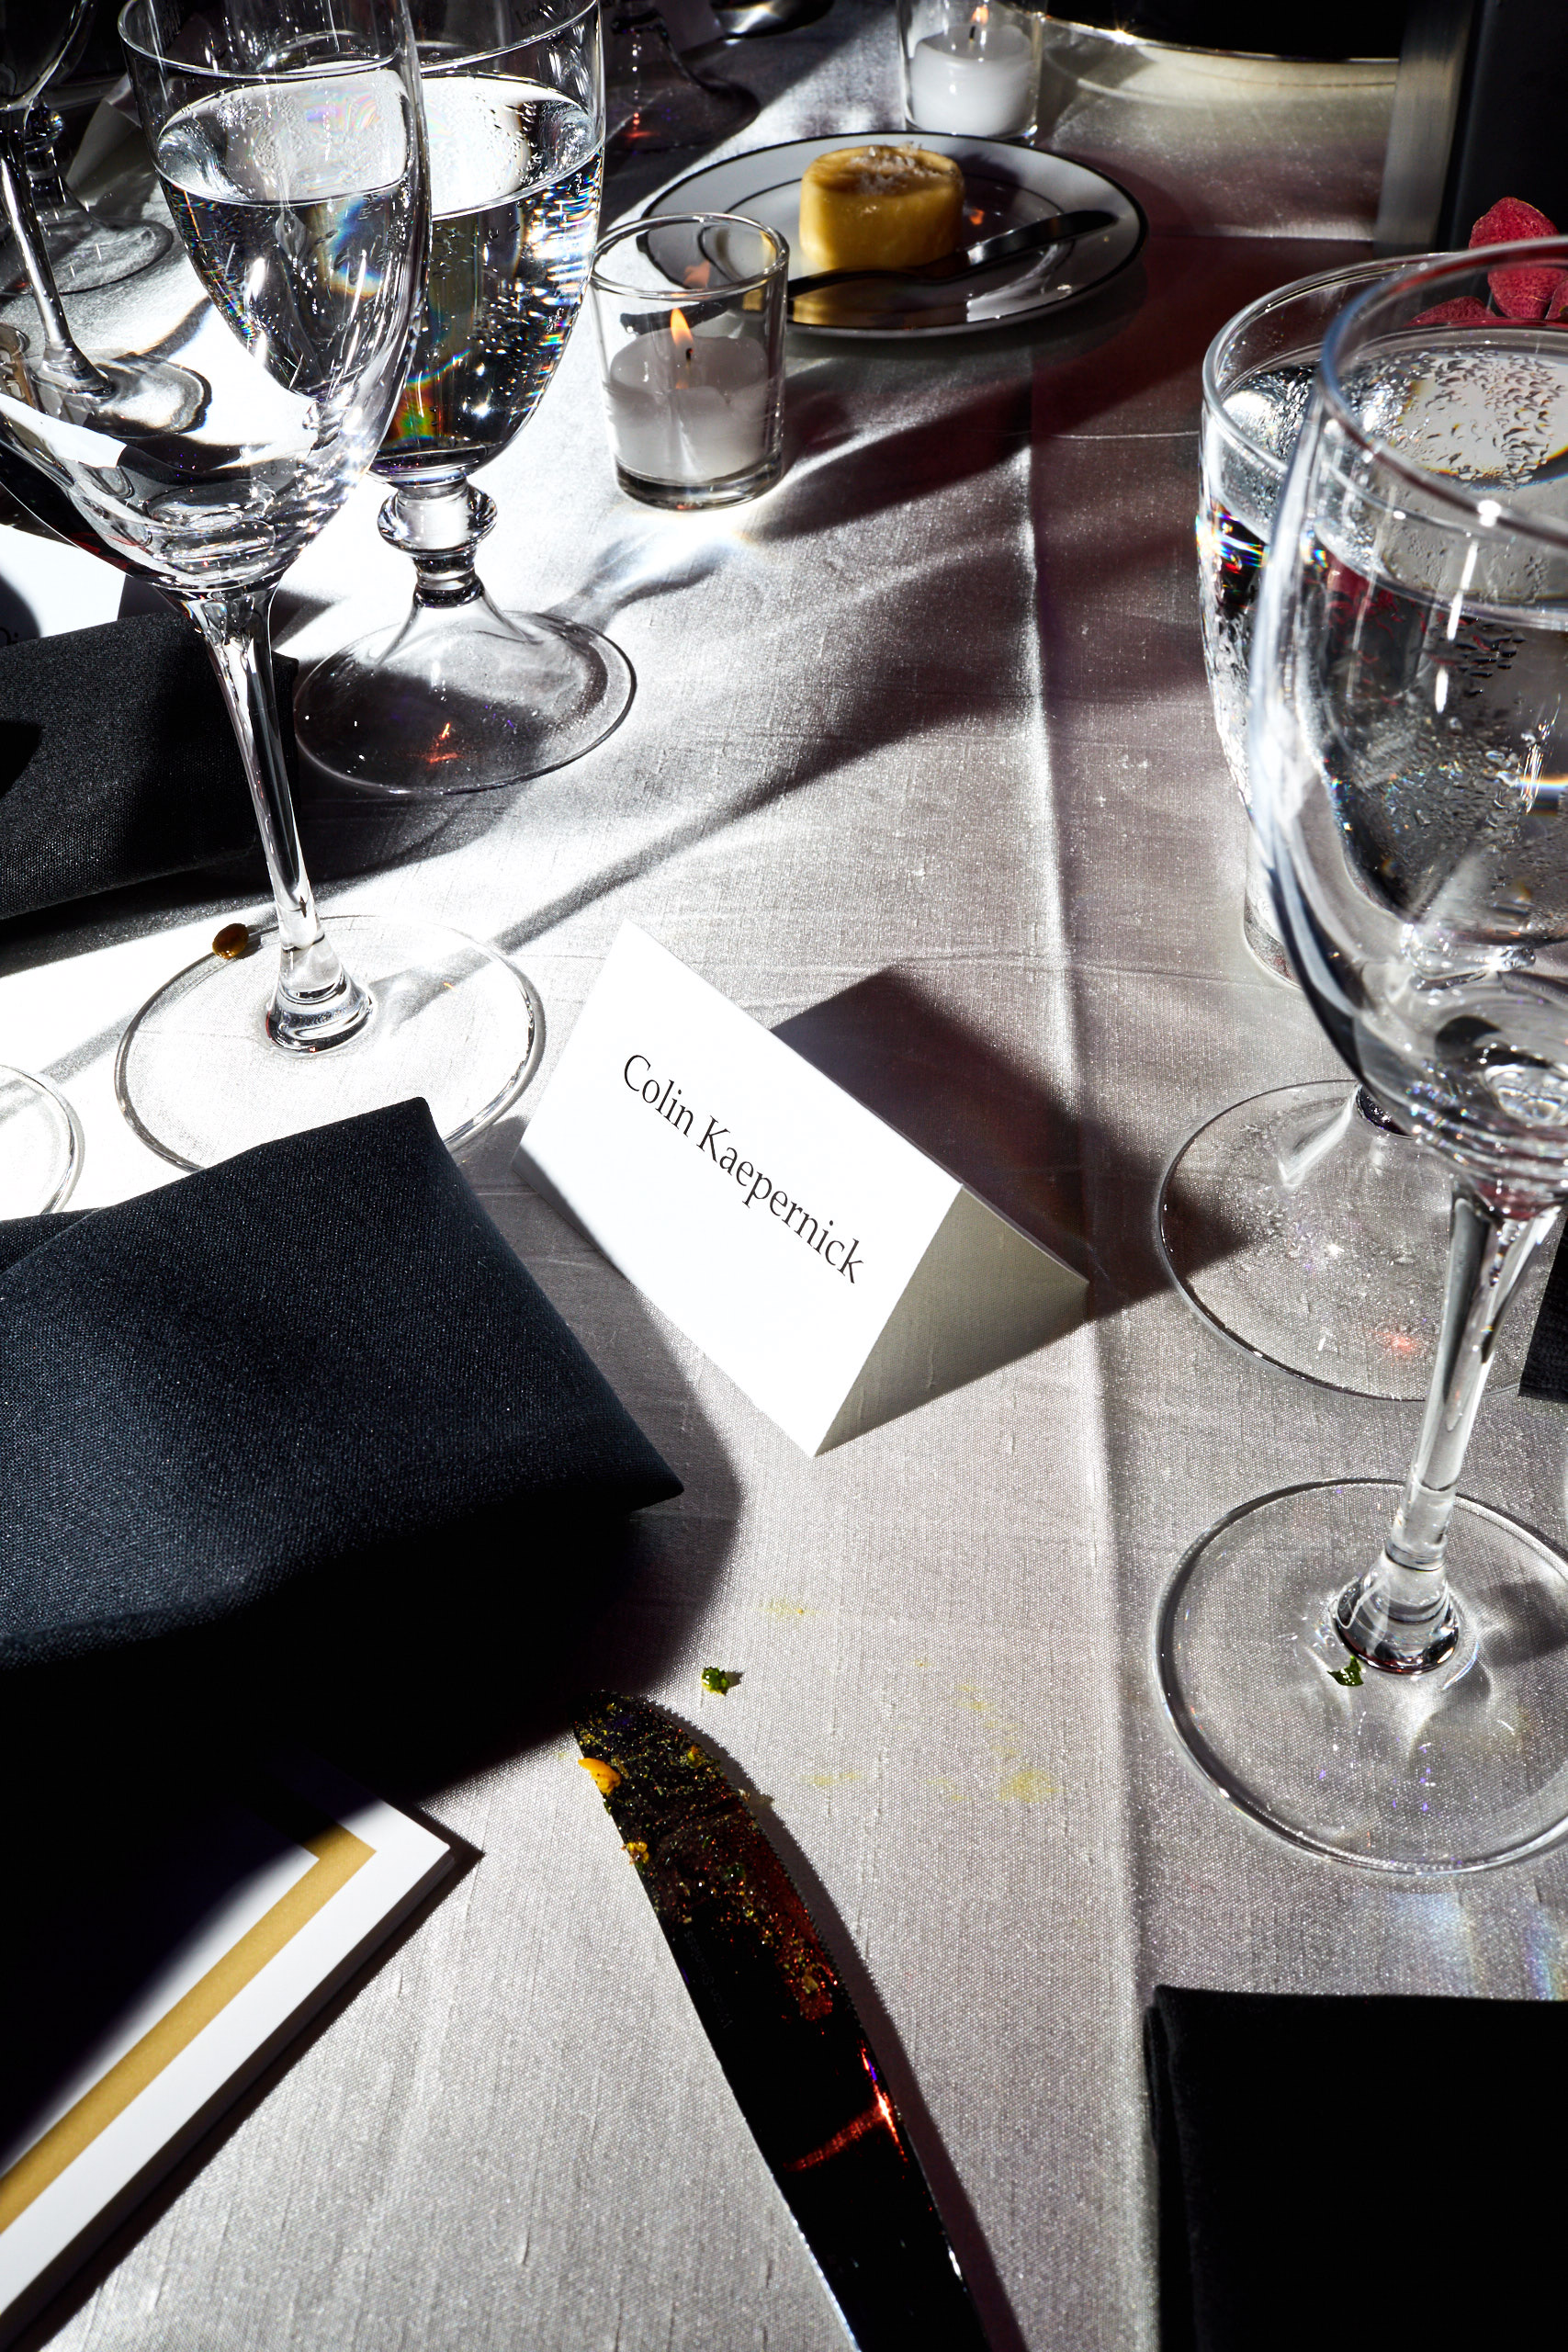 Colin Kapernick's table setting at the Time 100 Gala at Jazz at Lincoln Center on April 25, 2017 in New York City.